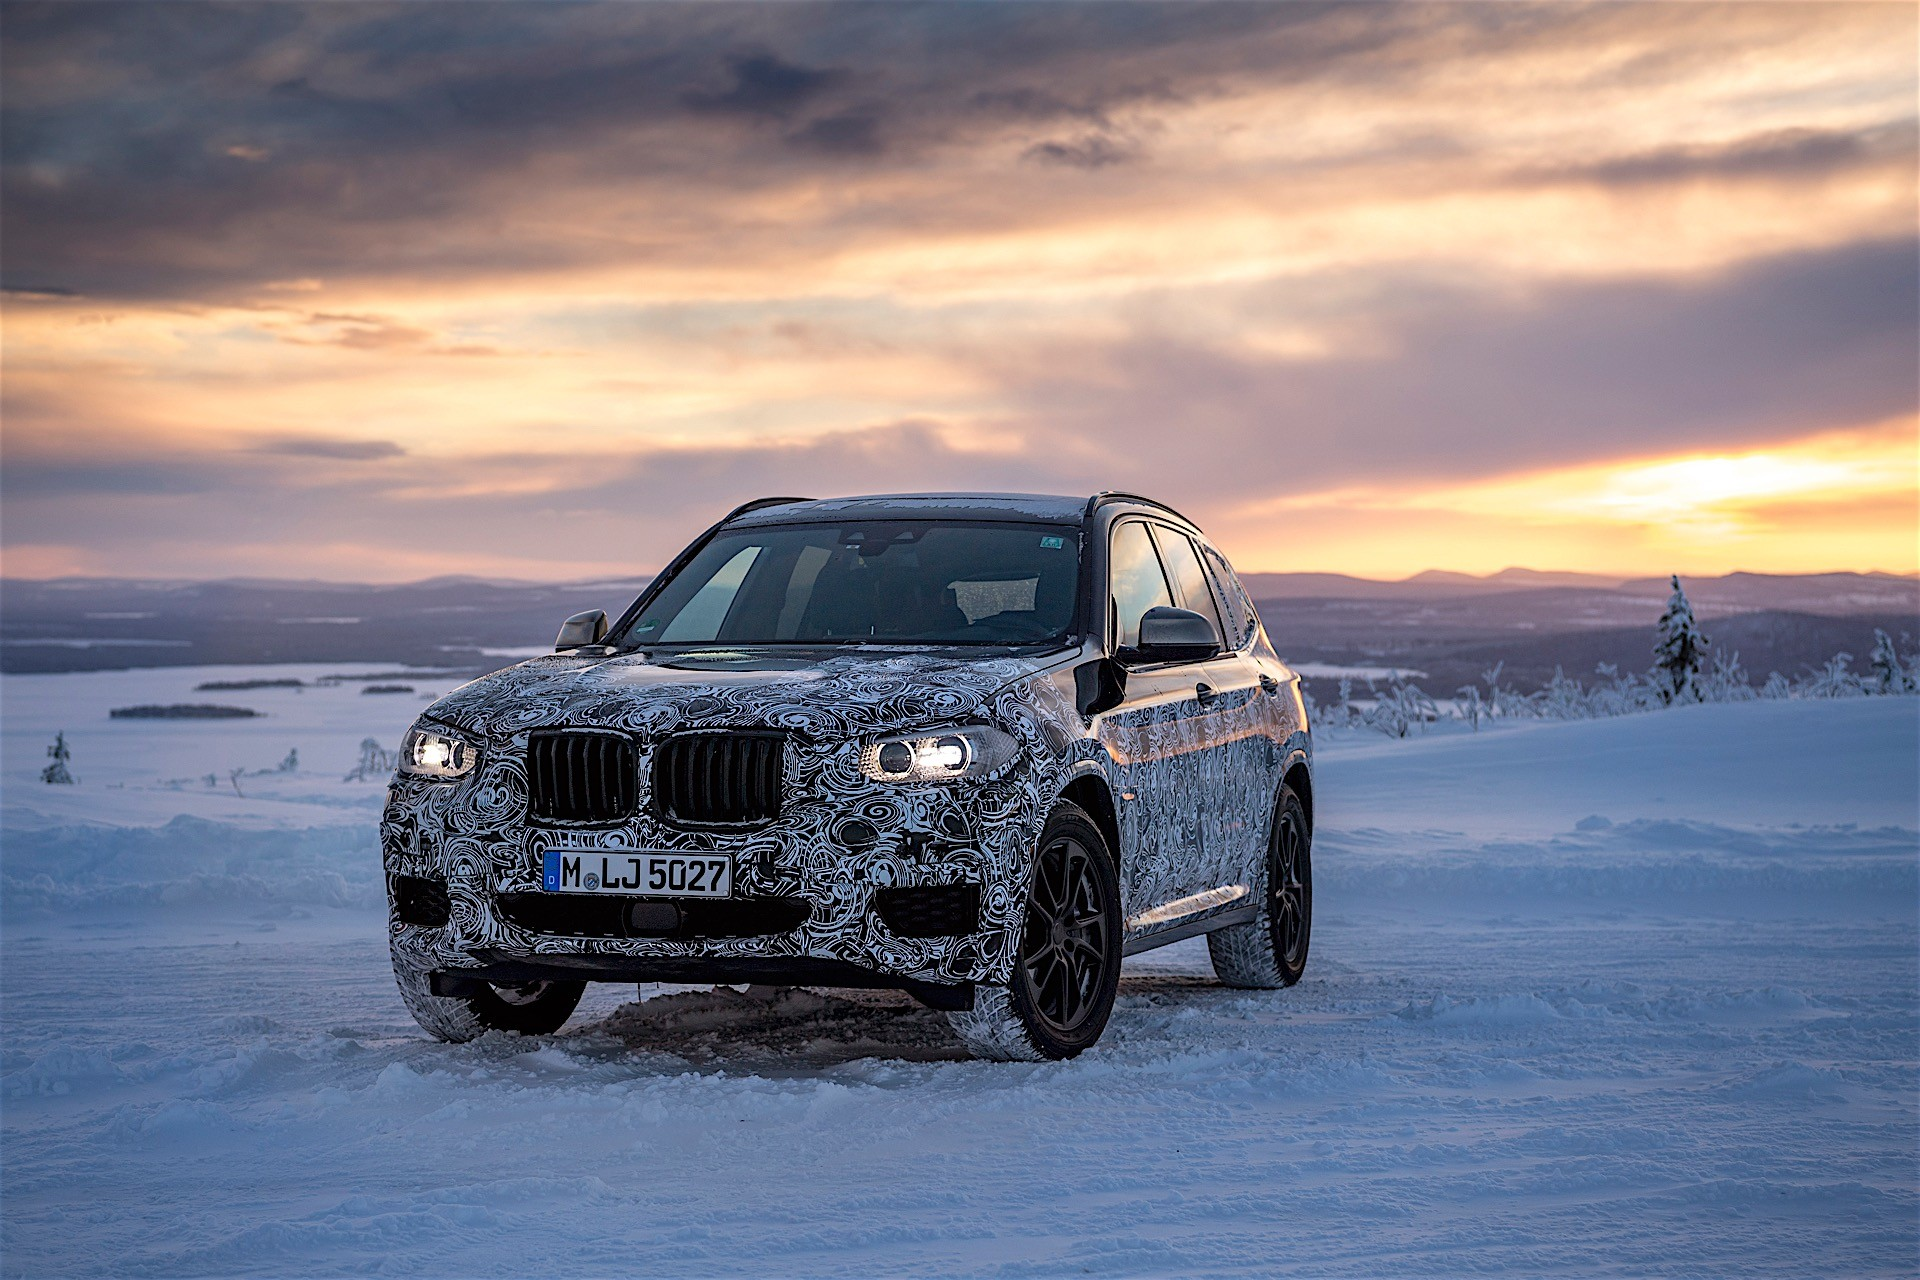 2018 BMW X3 G01 New Spy Shots And Official Release Date >> 2018 Bmw X3 Further Revealed In Official Spyshots